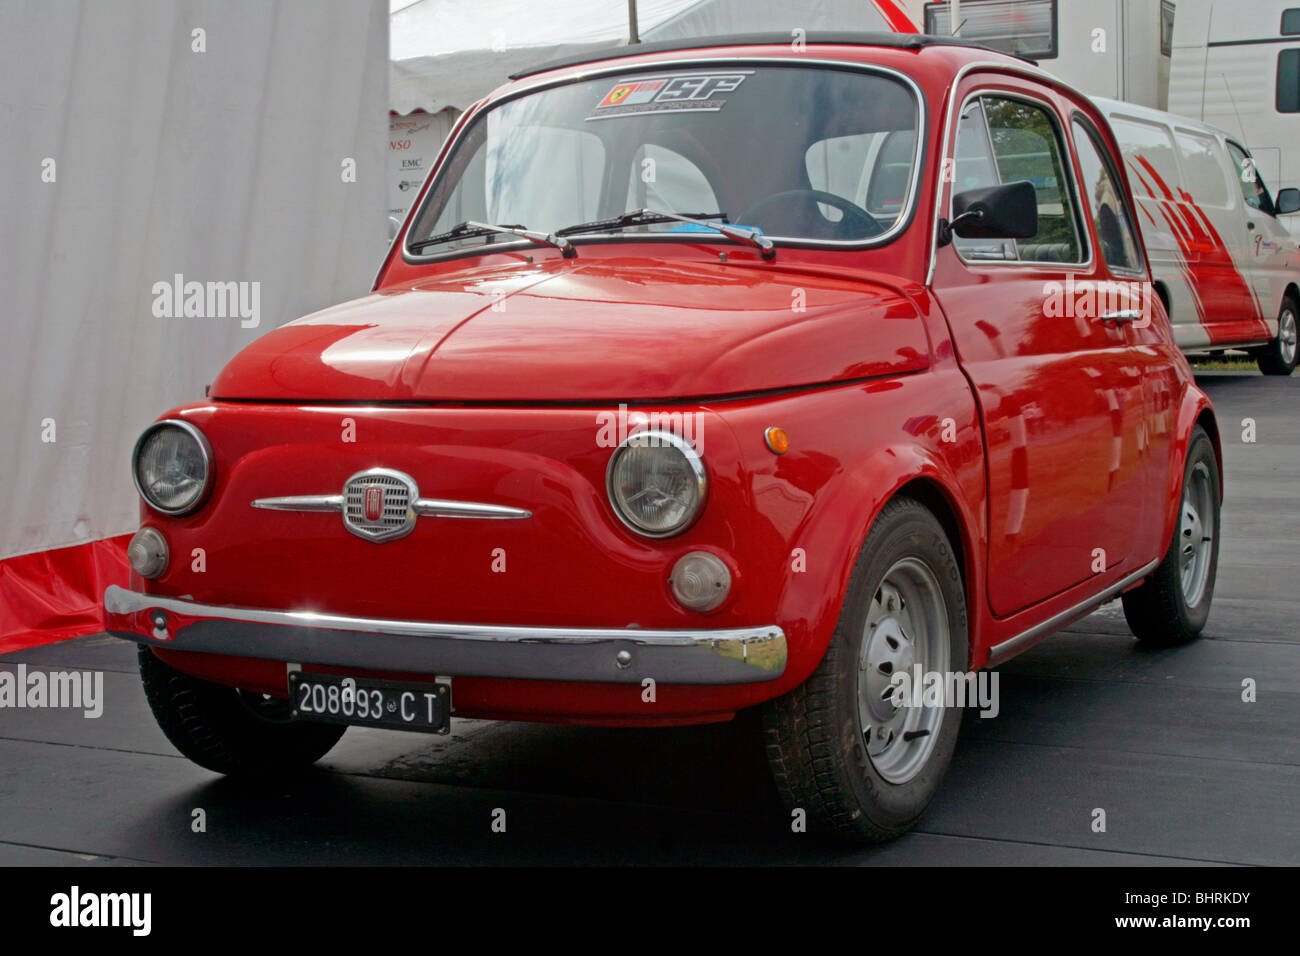 Fiat 500 Engine Stock Photos Amp Fiat 500 Engine Stock